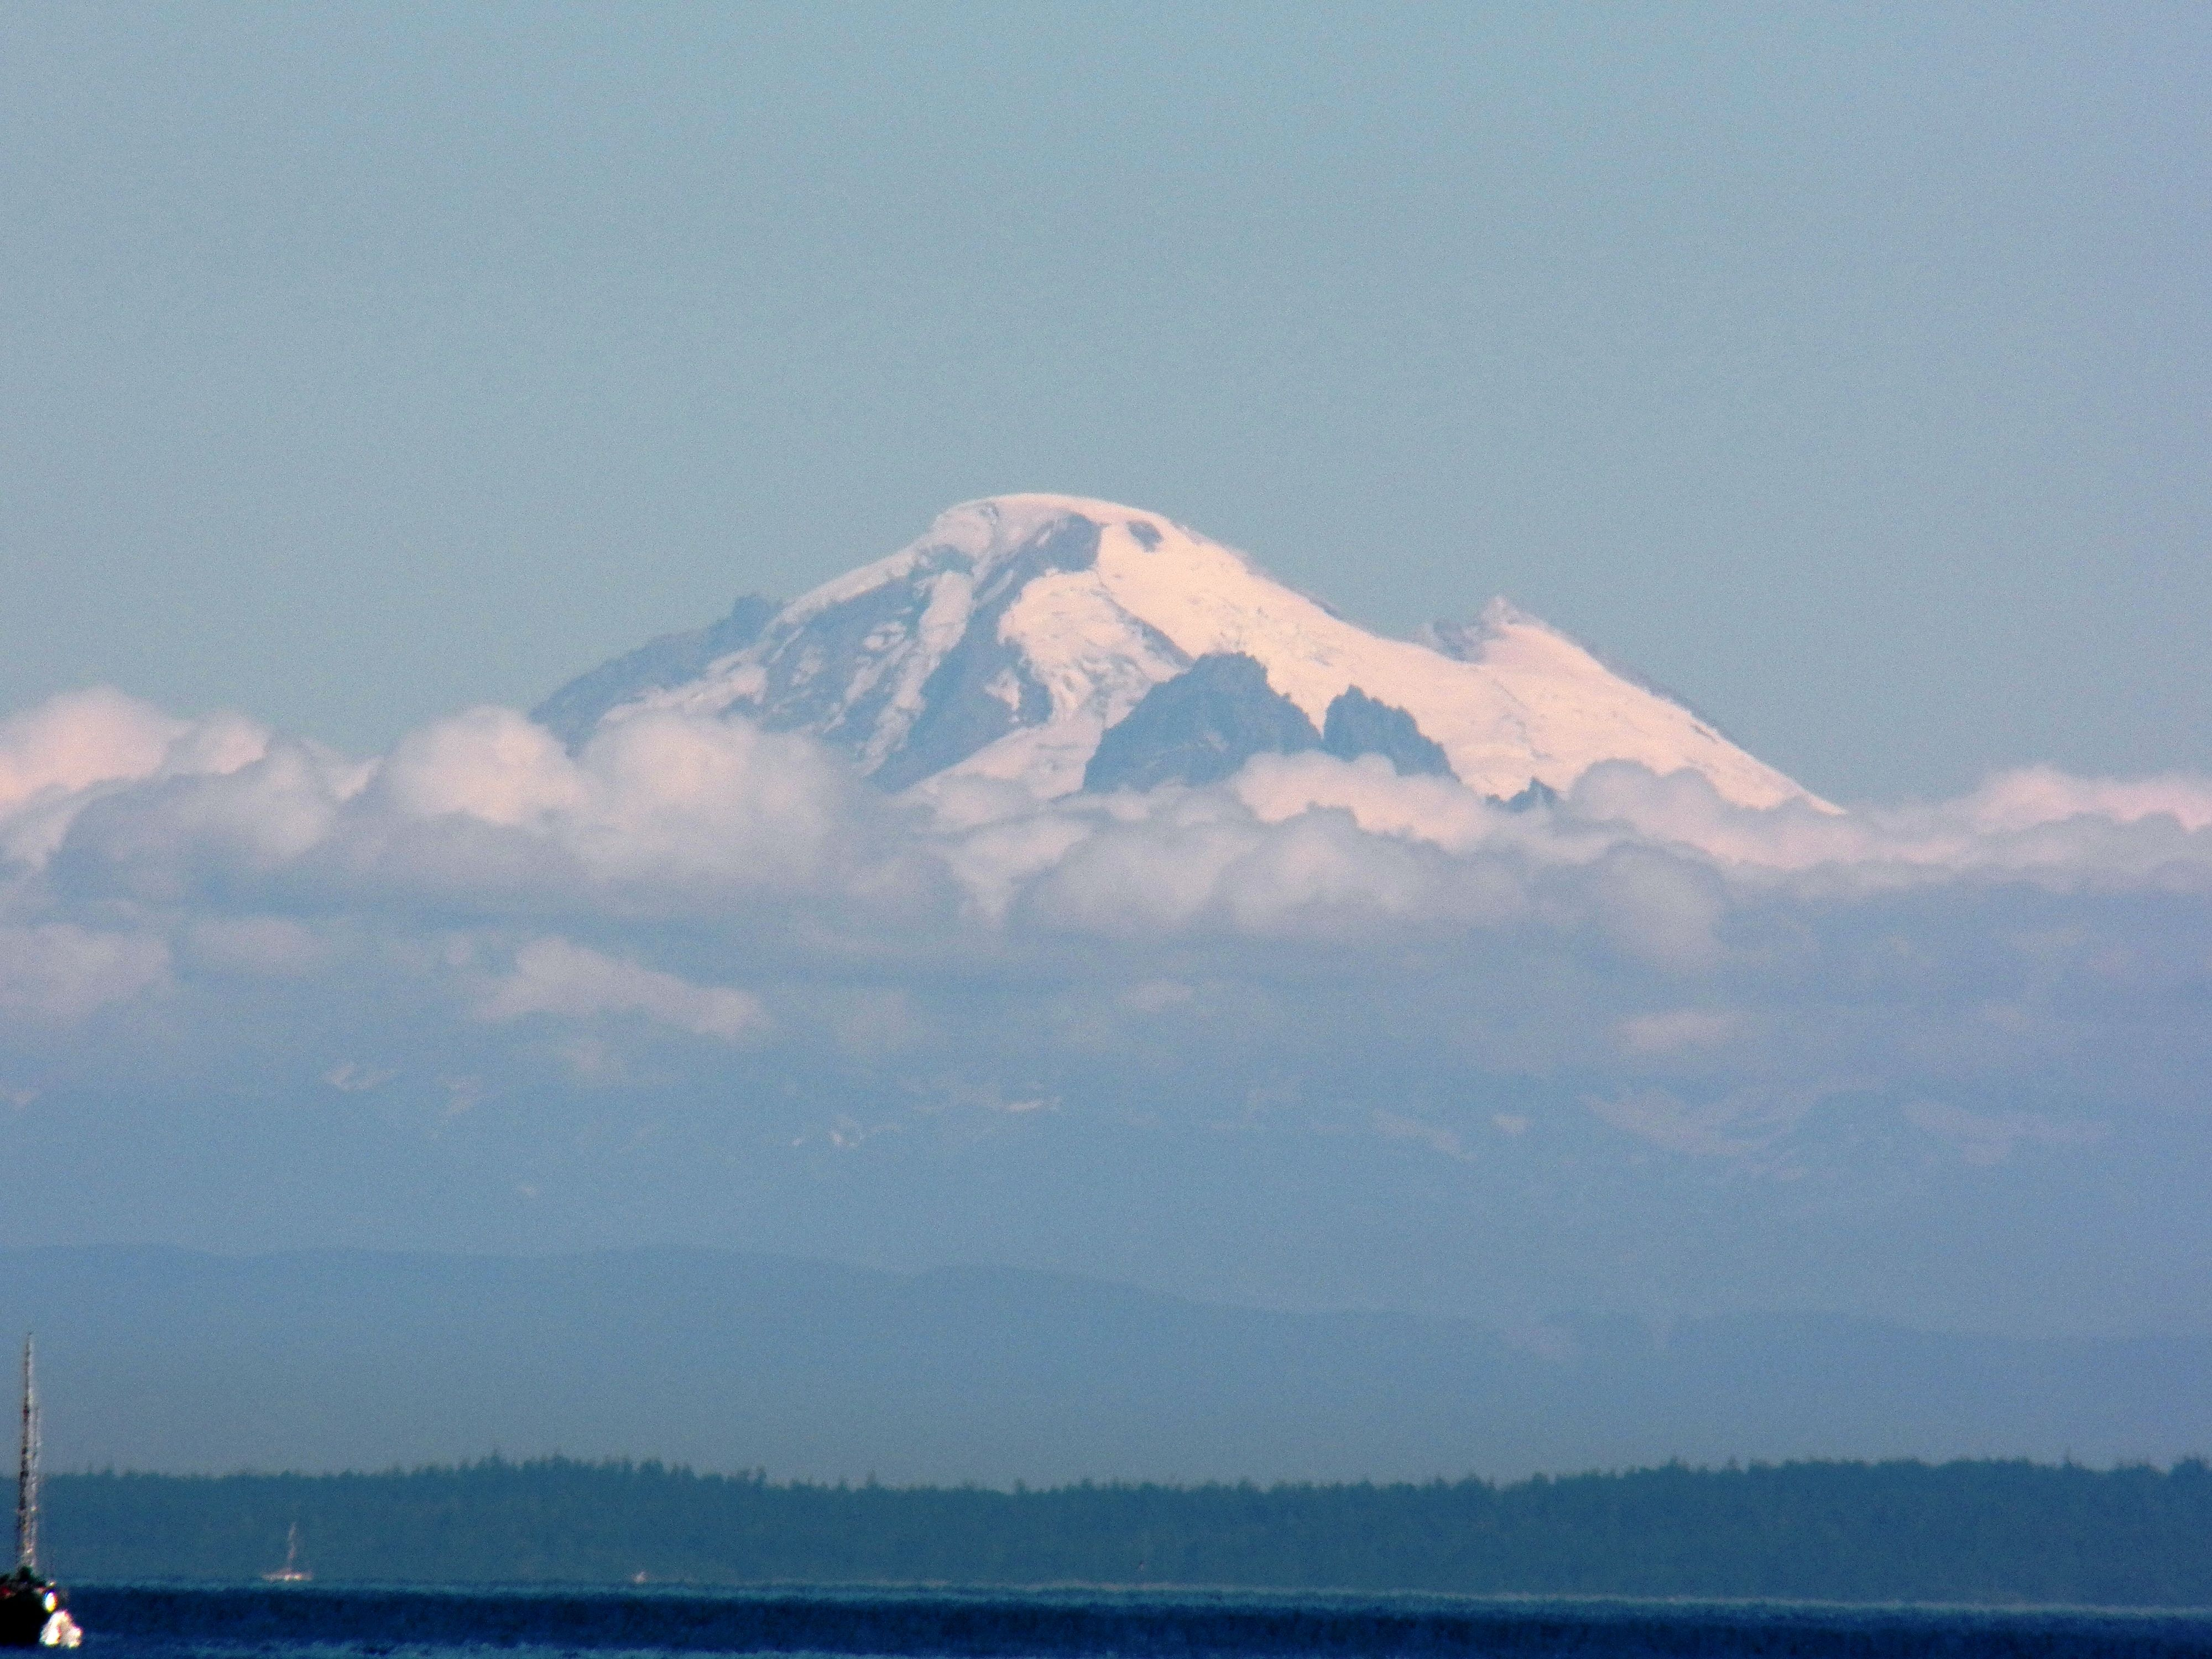 View of Mt. Baker's summit from the Salish Sea Marine